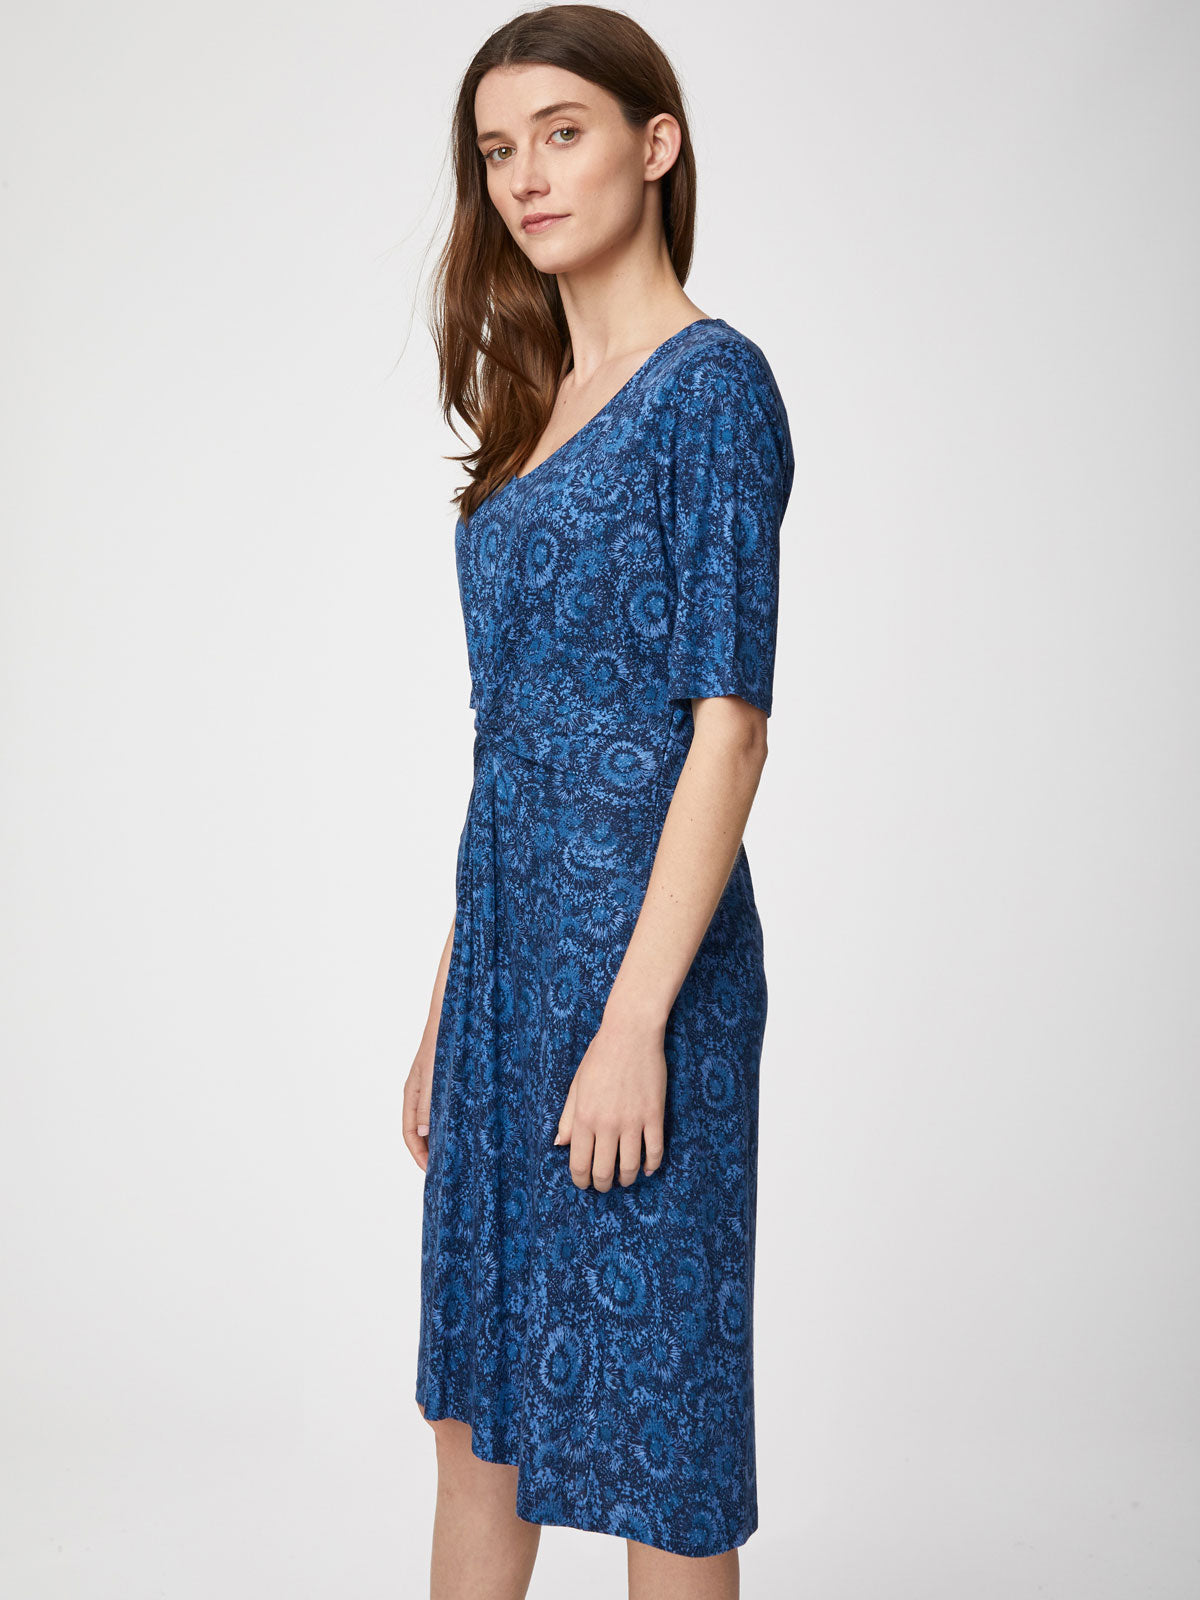 Valeria Bamboo/ Organic Cotton Dress